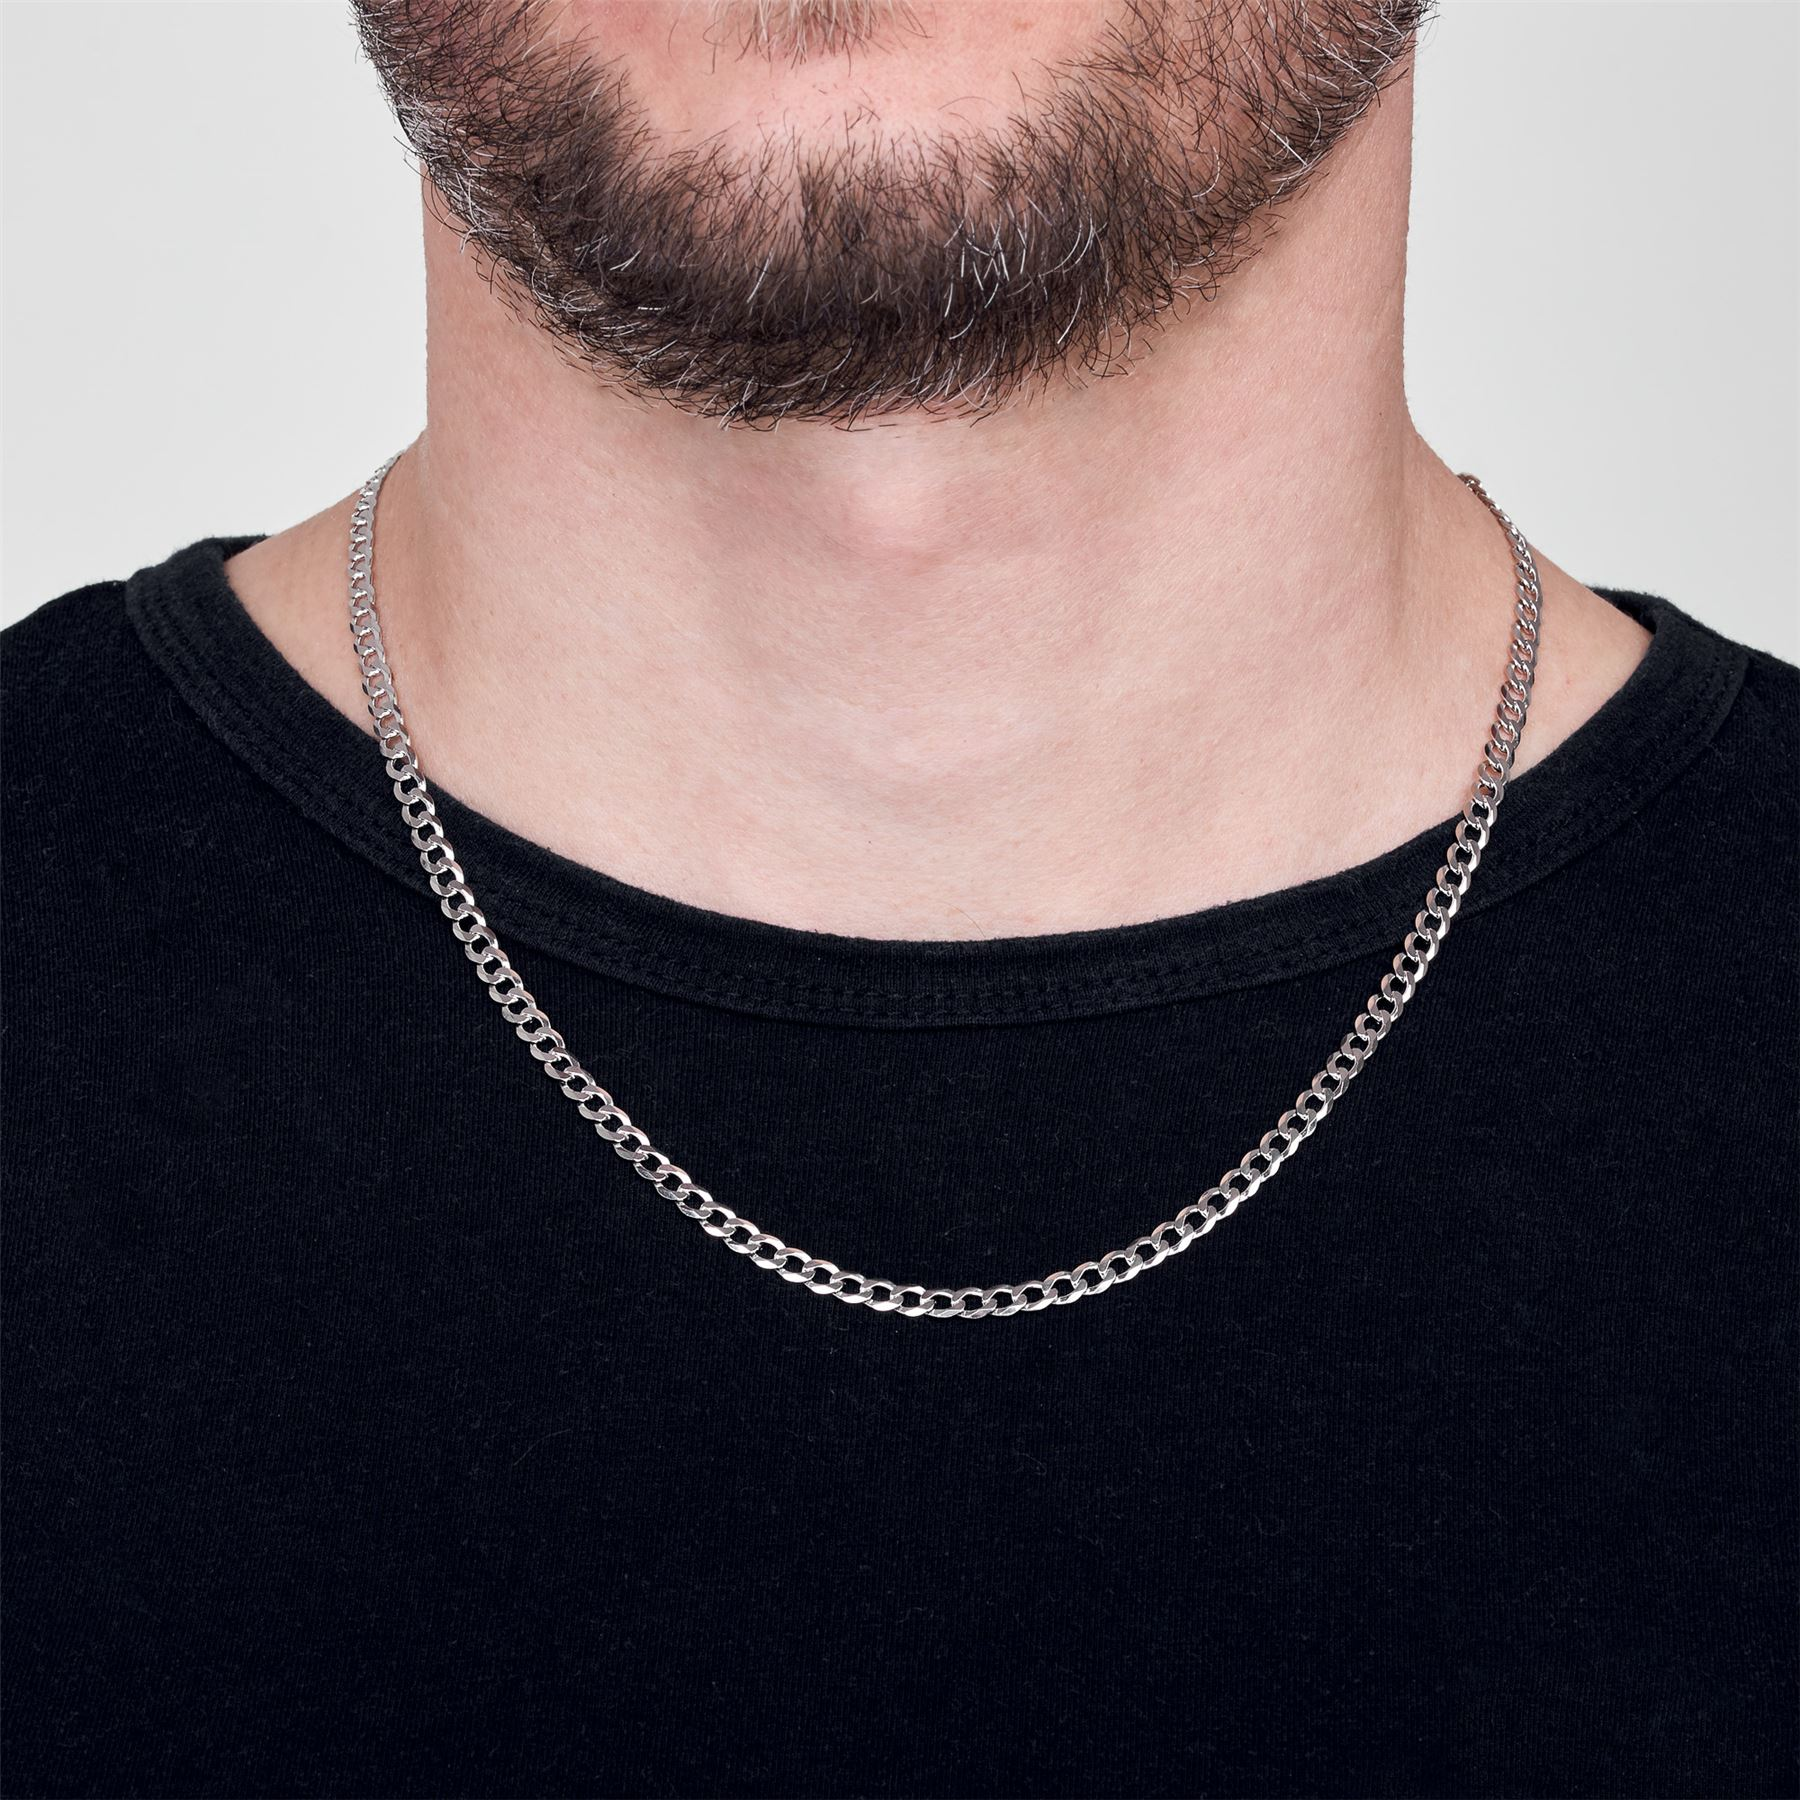 Amberta-925-Sterling-Silver-Link-Chain-Mens-Curb-Cuban-Necklace-ALL-SIZES-Italy thumbnail 27